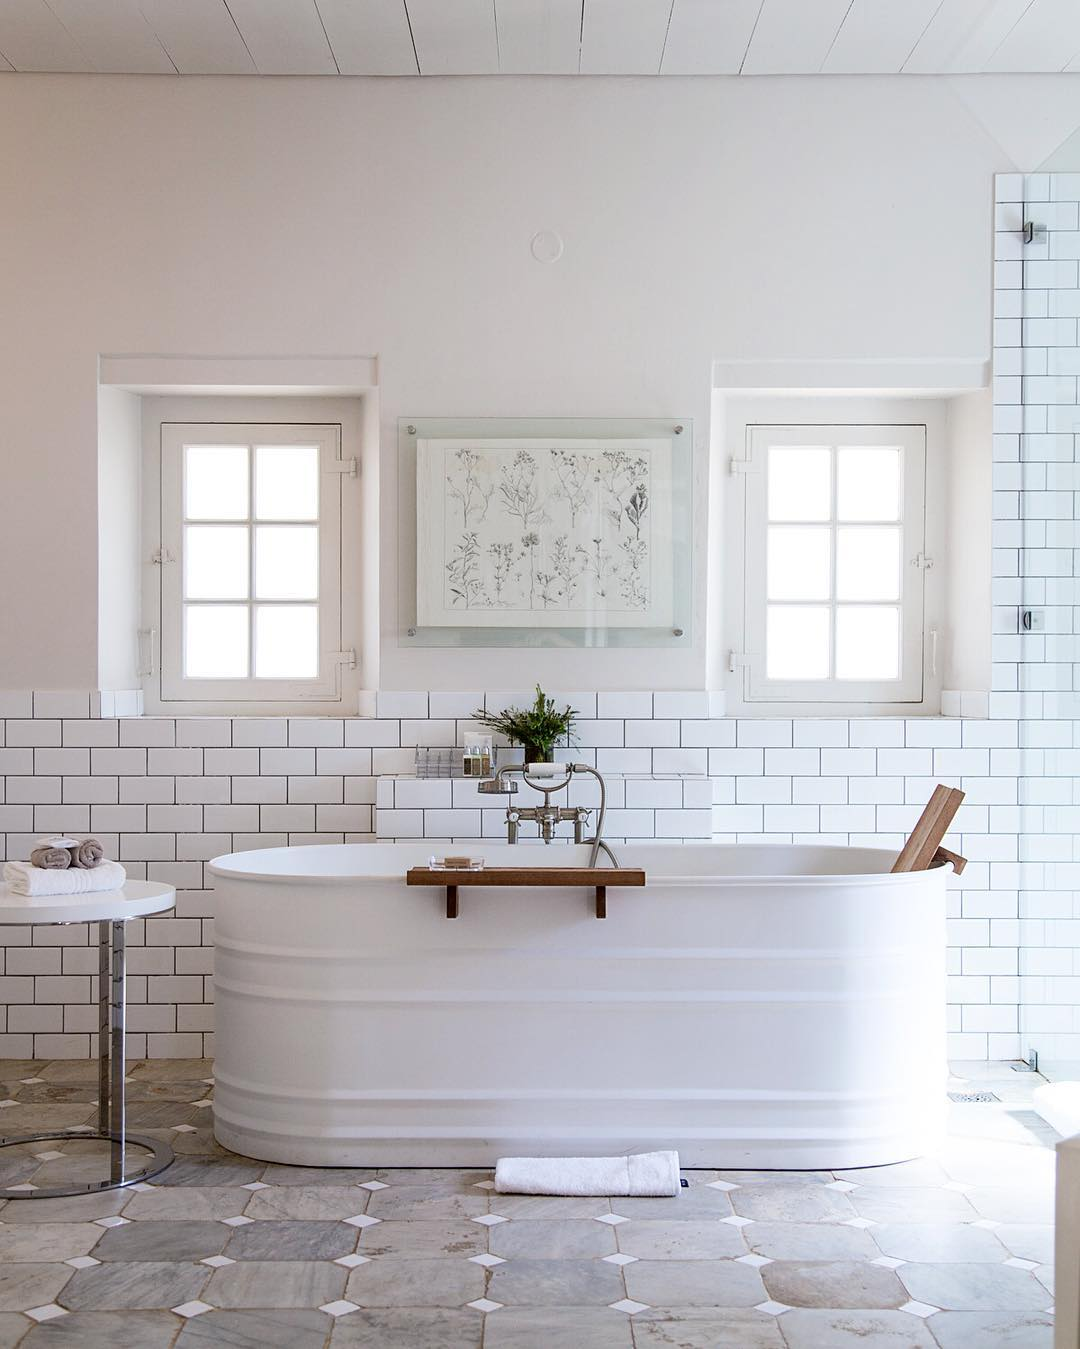 Home Design Trends: Galvanized Stock Tanks and Feed Troughs as Décor; Farmhouse Tub Dreams